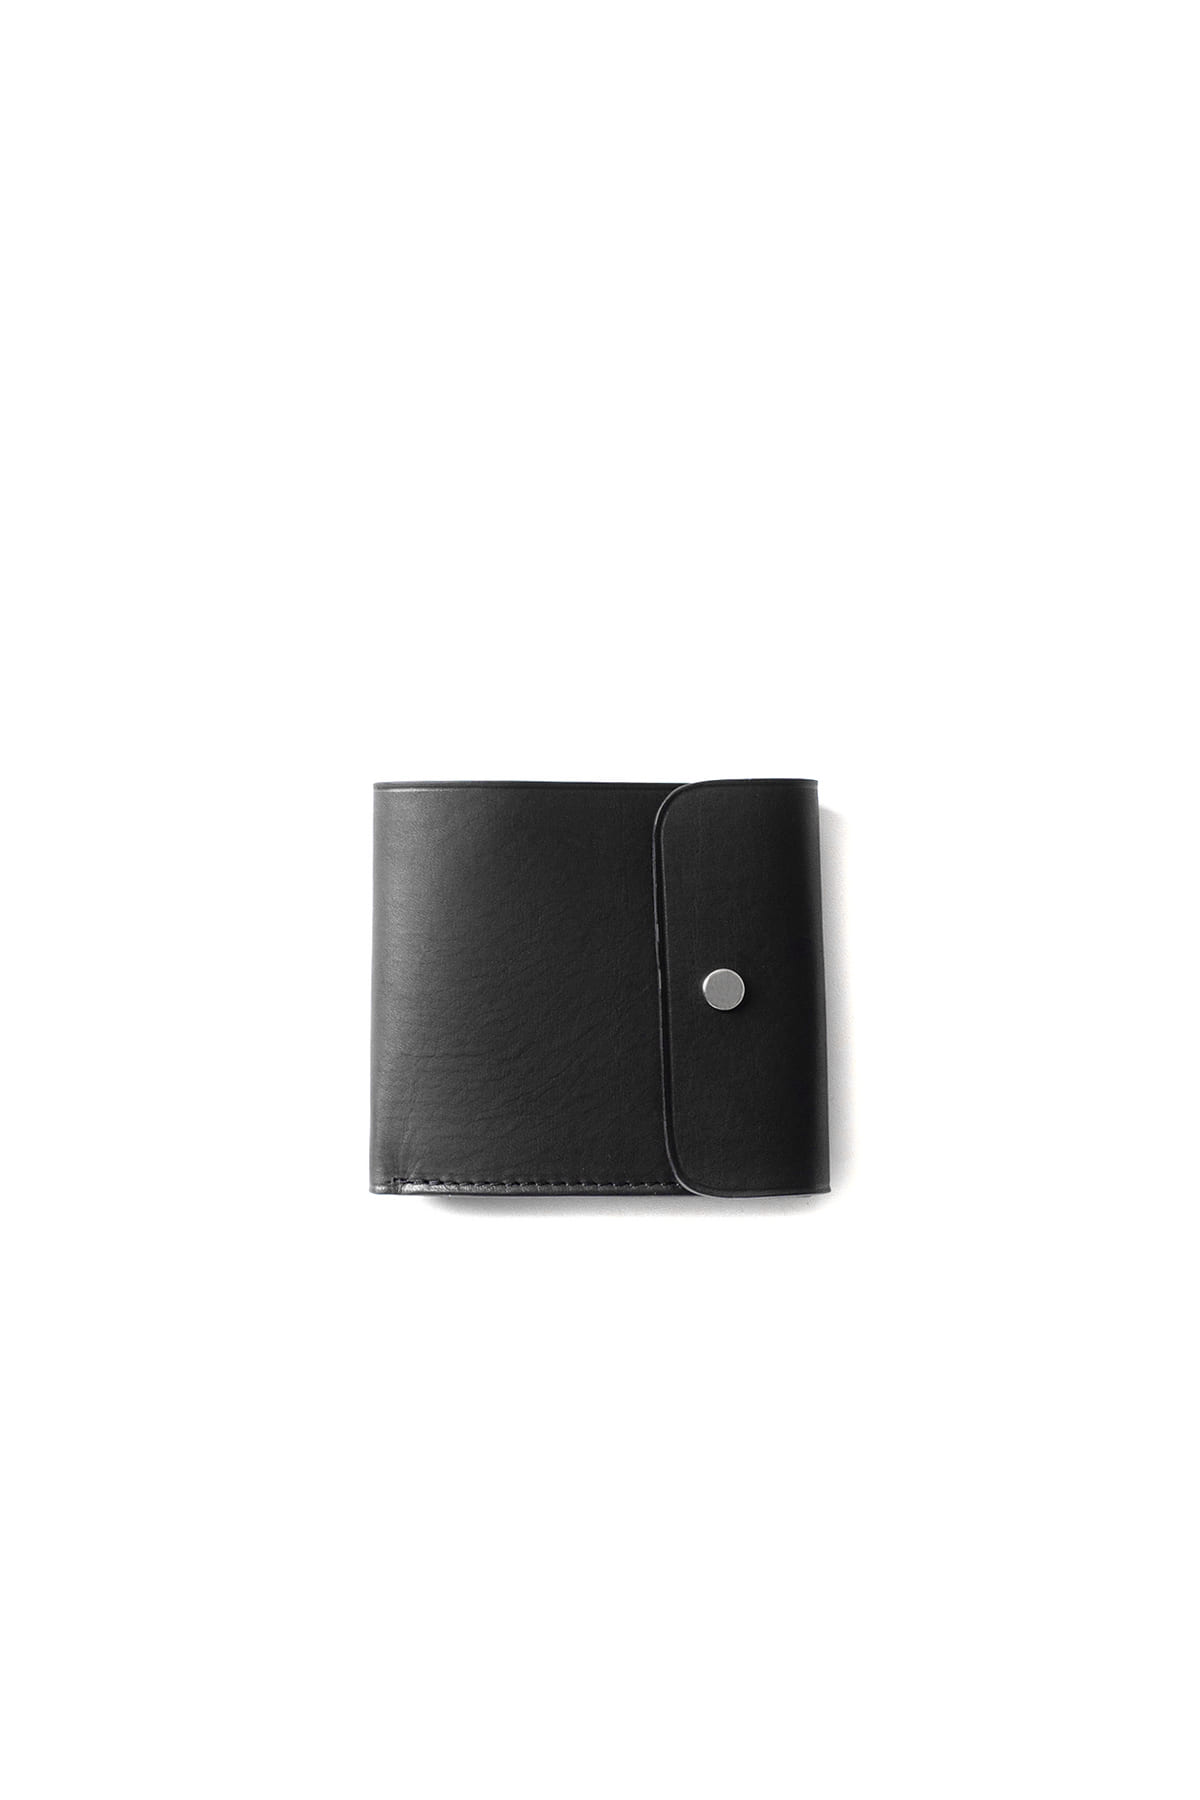 STEVE MONO : 09/6 Classic Pocket Wallet (Black)